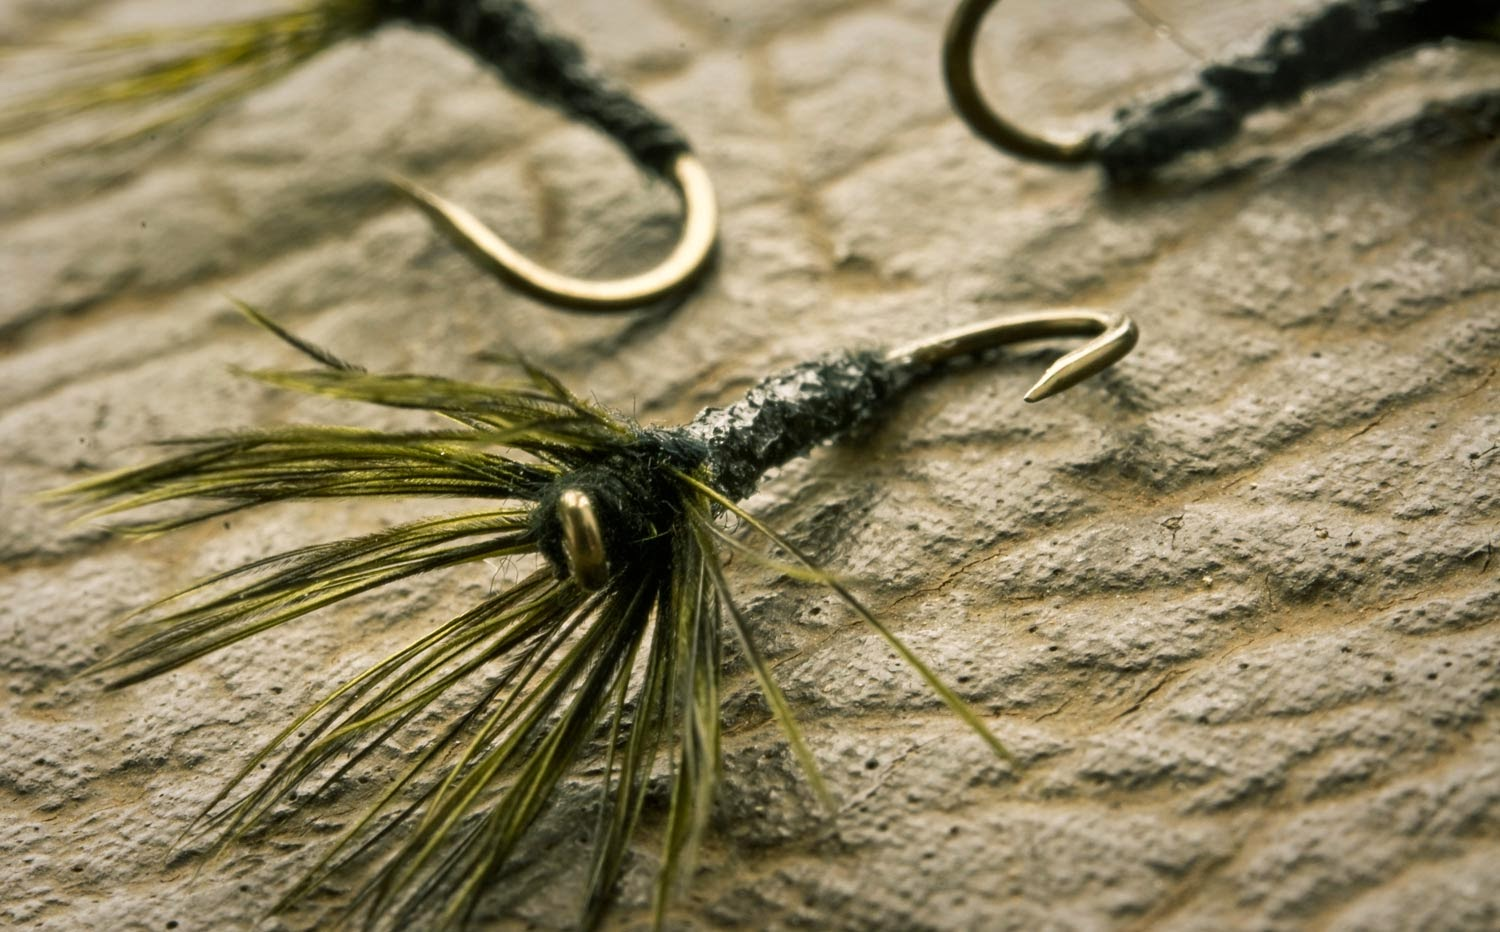 http://www.ginkandgasoline.com/gink-gasoline-fly-patterns/tenkara-fly-tying/